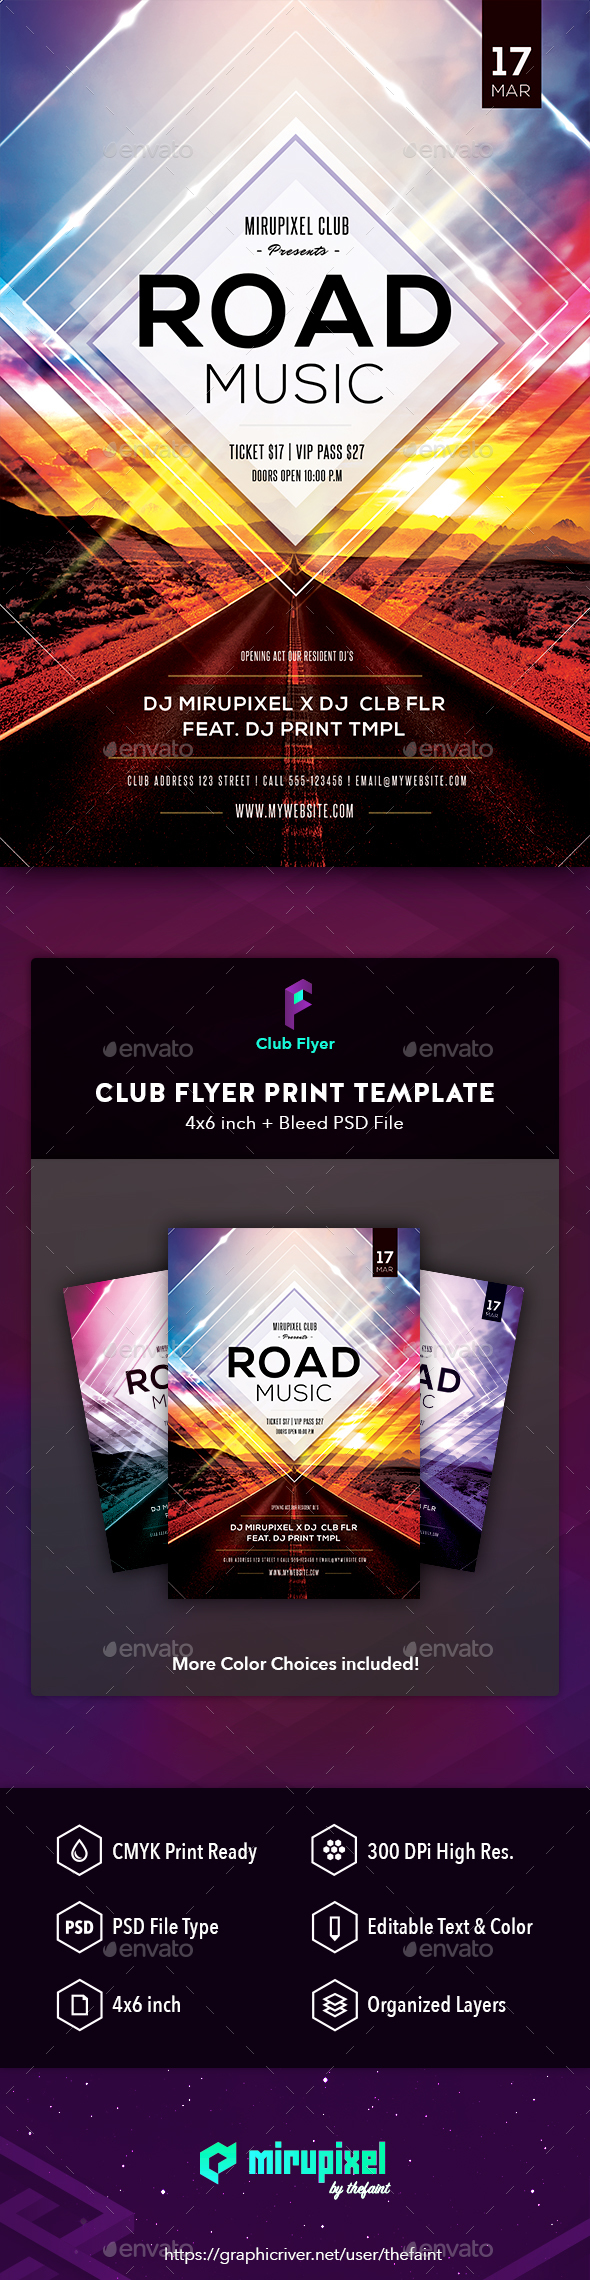 Club Flyer - Road Music - Clubs & Parties Events